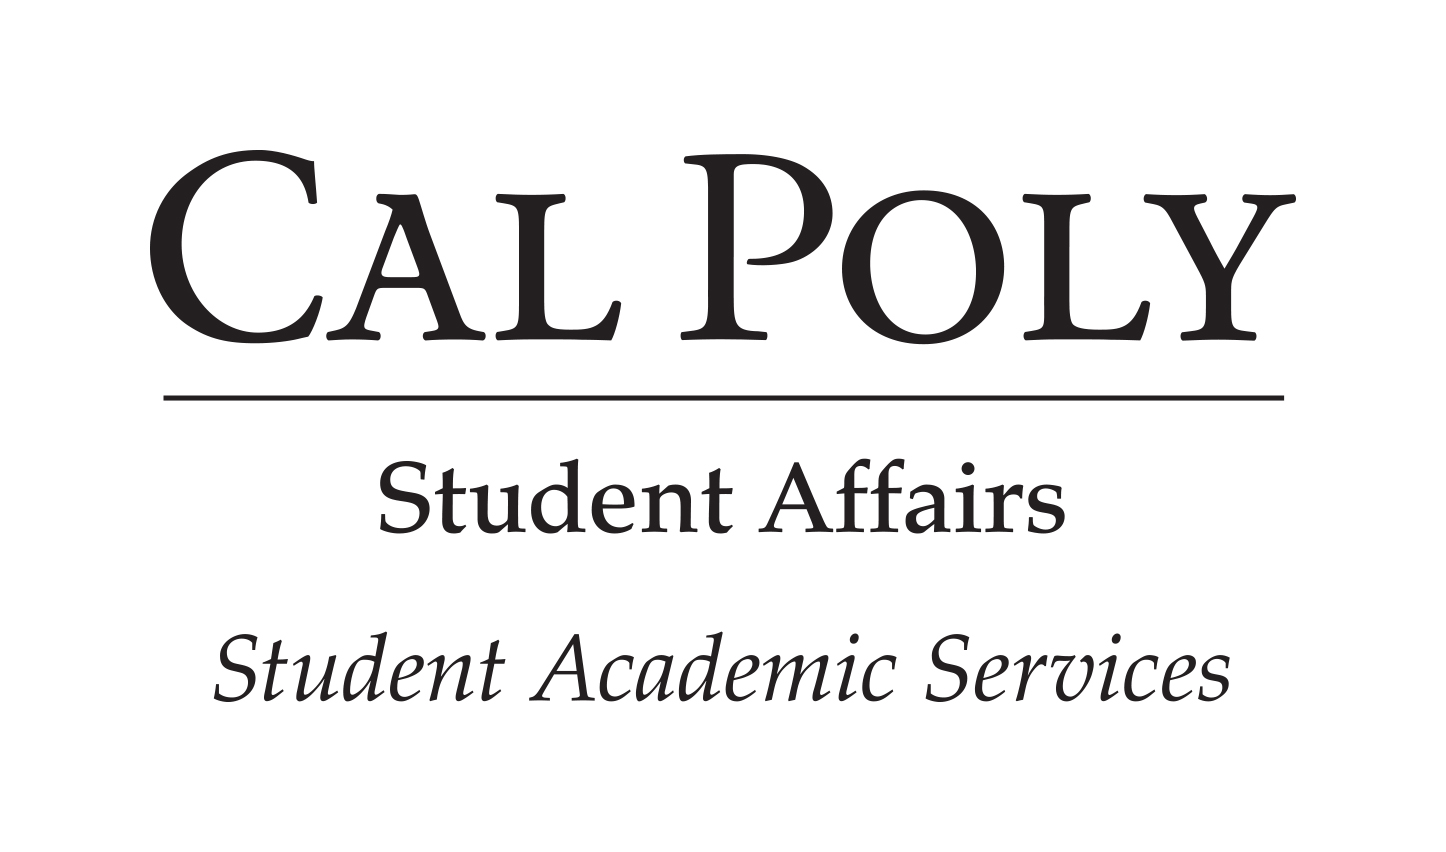 Student Academic Services logo